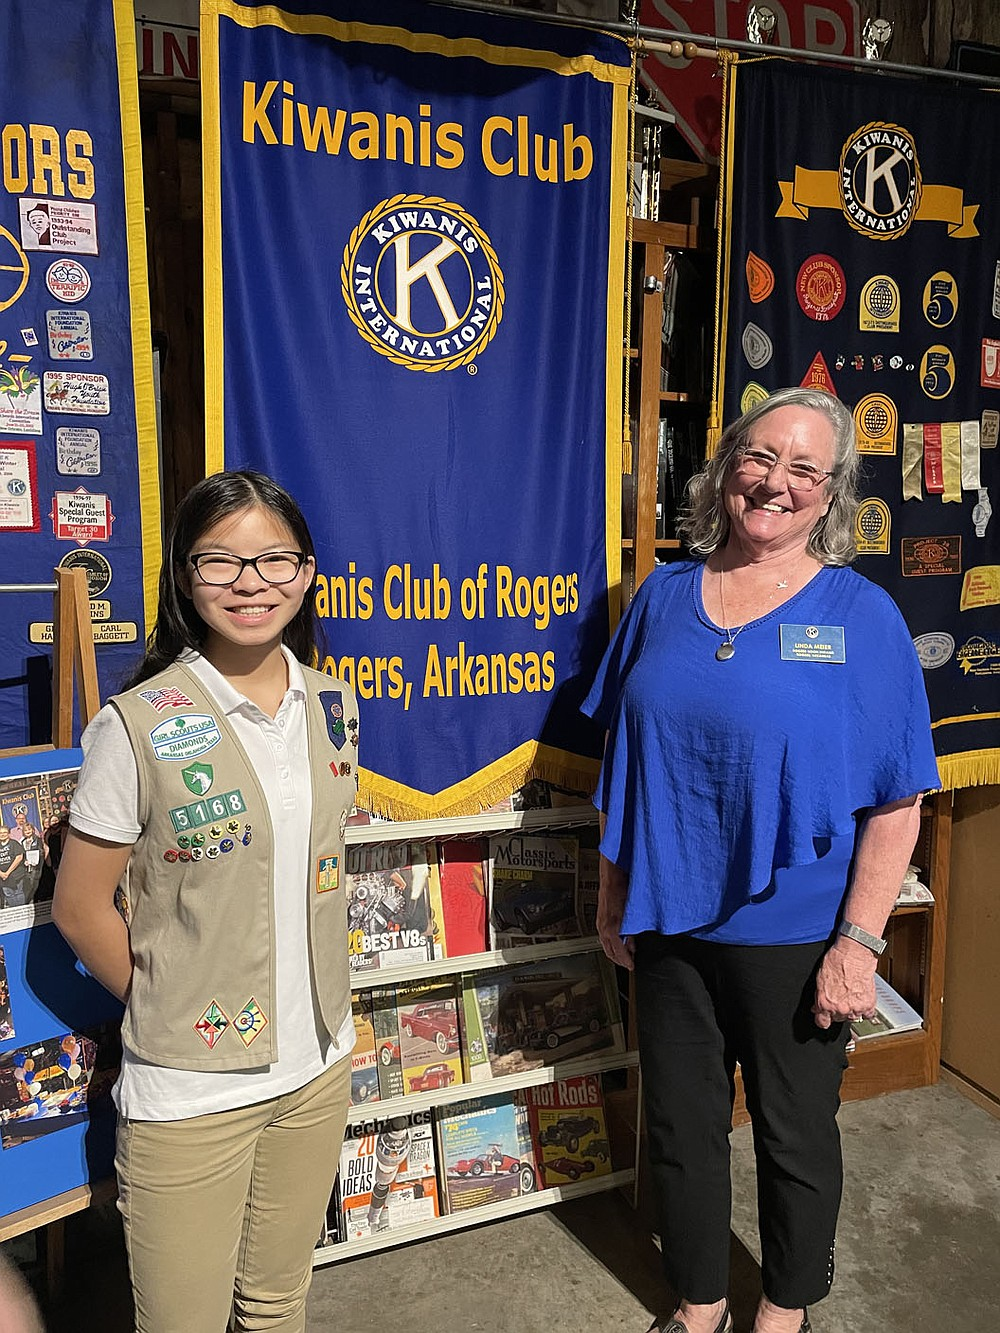 Linda Meier, president ofThe Kiwanis Club of Rogers Noon, welcomed Nicole McKellar as guest speaker. She is a student at Rogers High School and is working on the top honor of Girl Scouts by speaking and educating the club on Pollinators. She handed out seeds to be planted and gave information on the importance of planting and maintaining flower beds that help the butterflies, bees, etc. thrive in our area.  (Courtesy Photo)